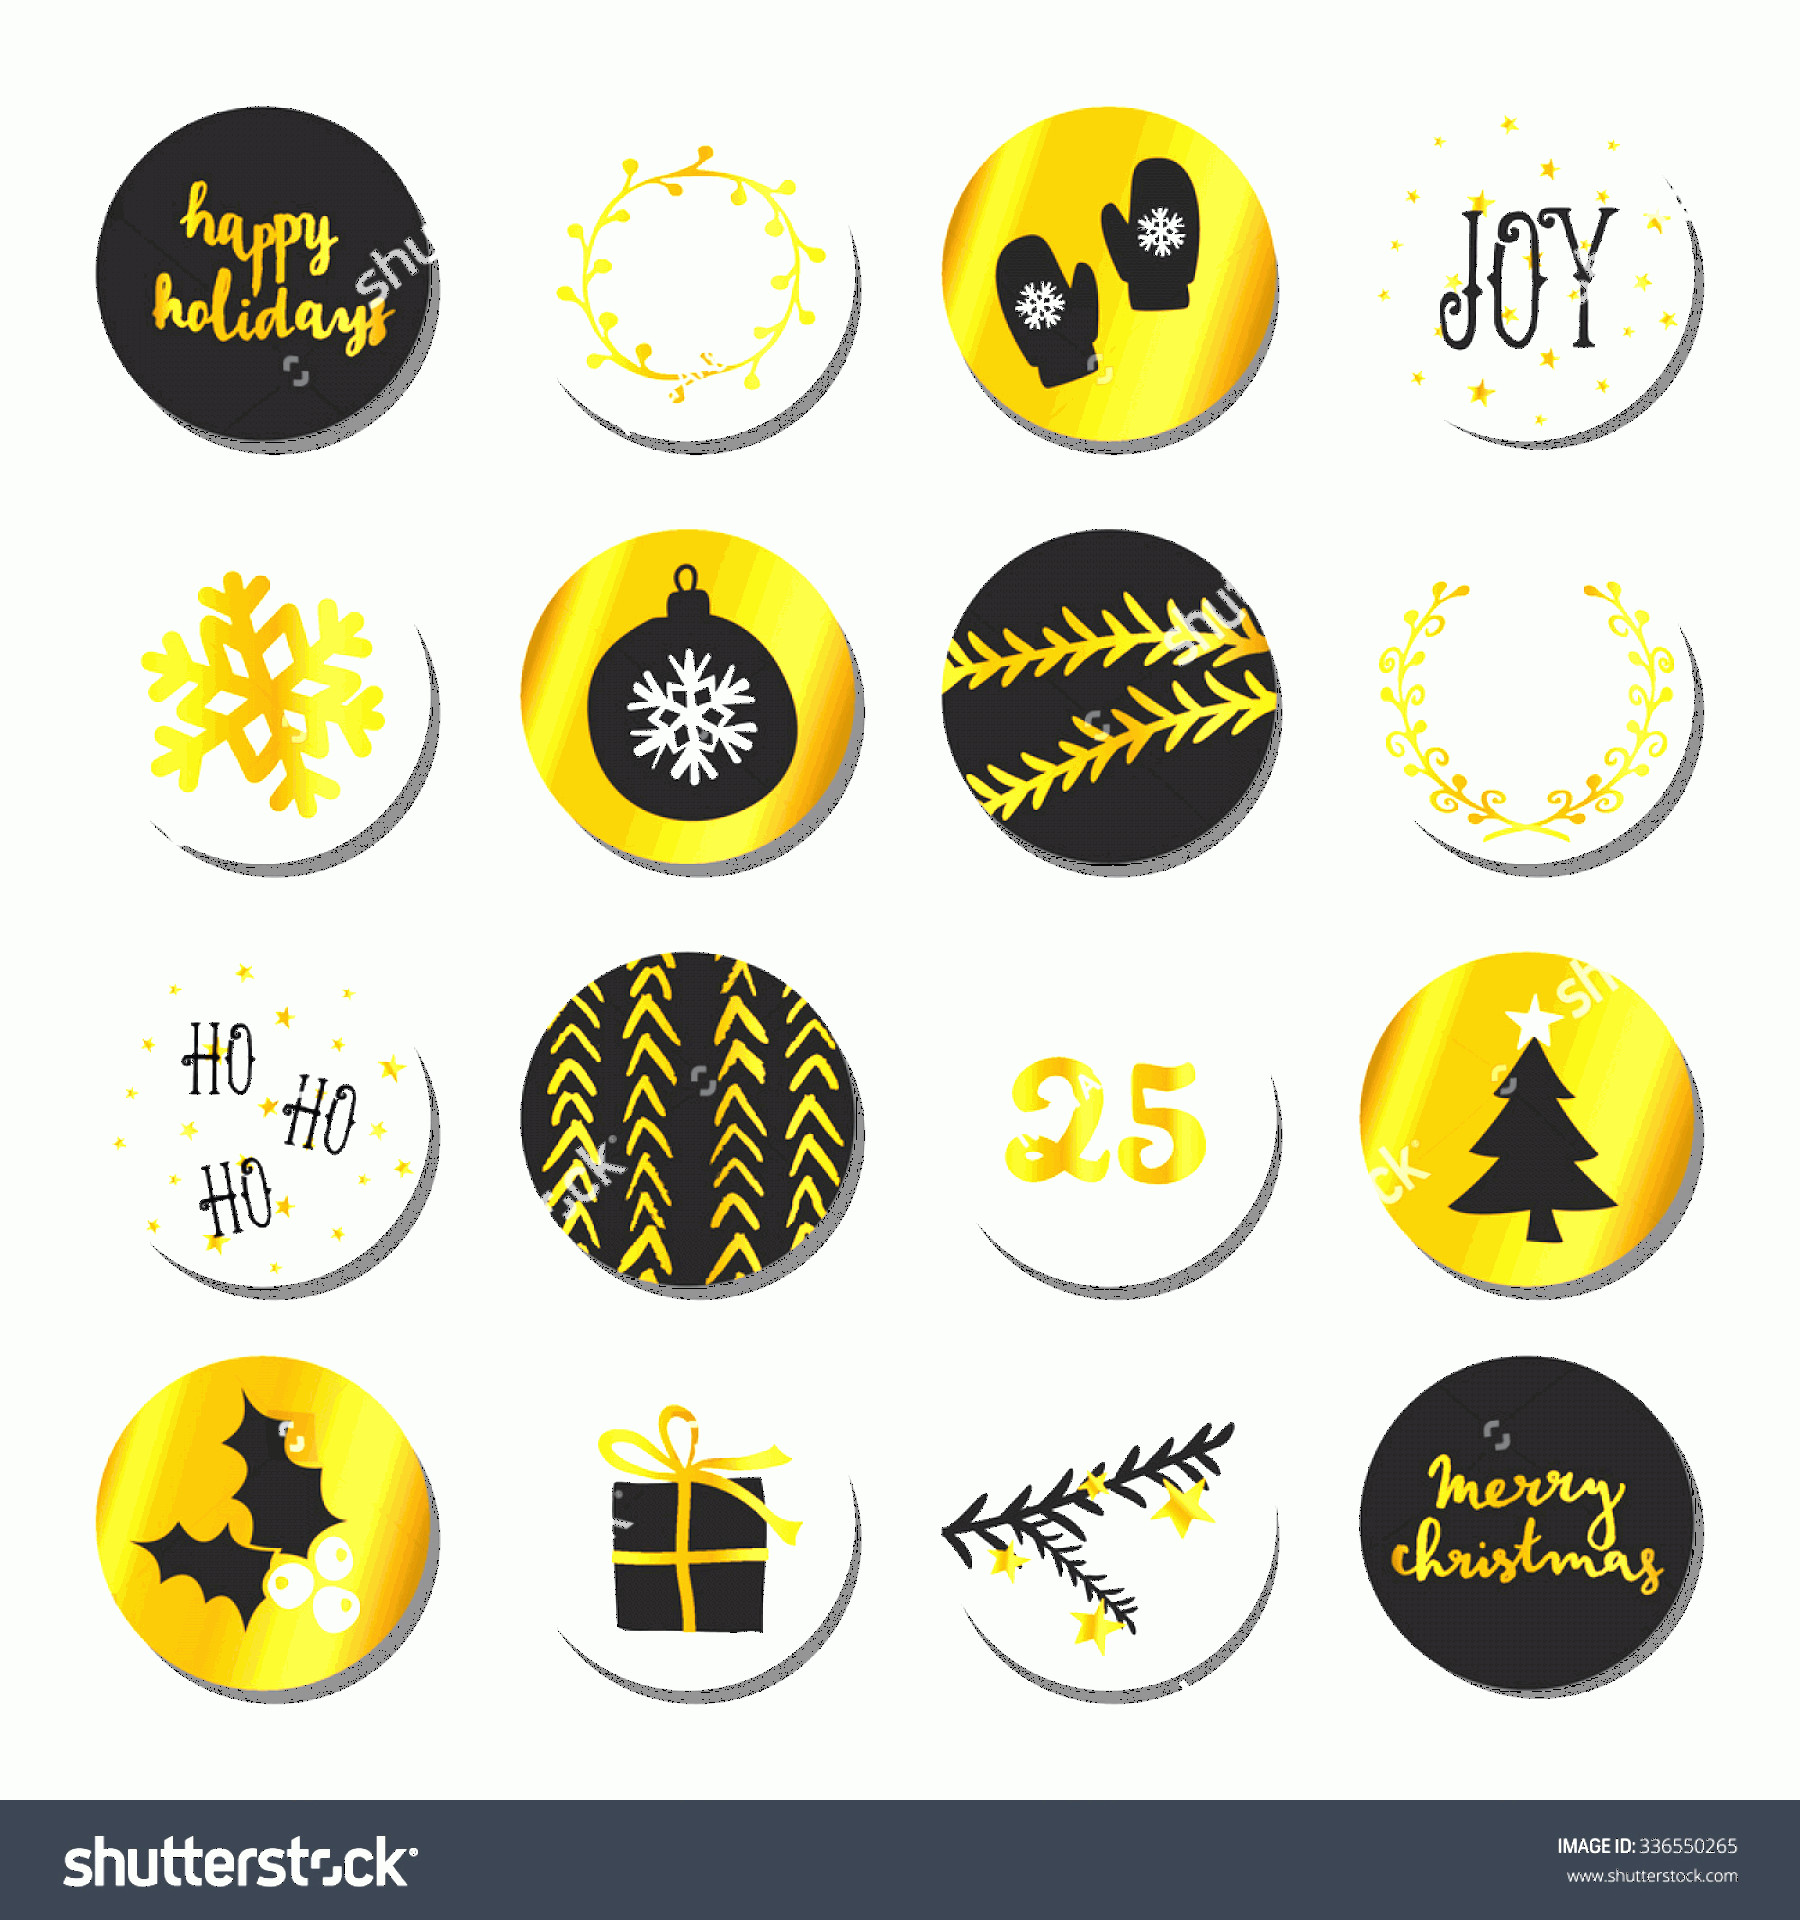 Vector Christmas Toppers: Set Christmas Round Stickersgift Tagscake Toppers